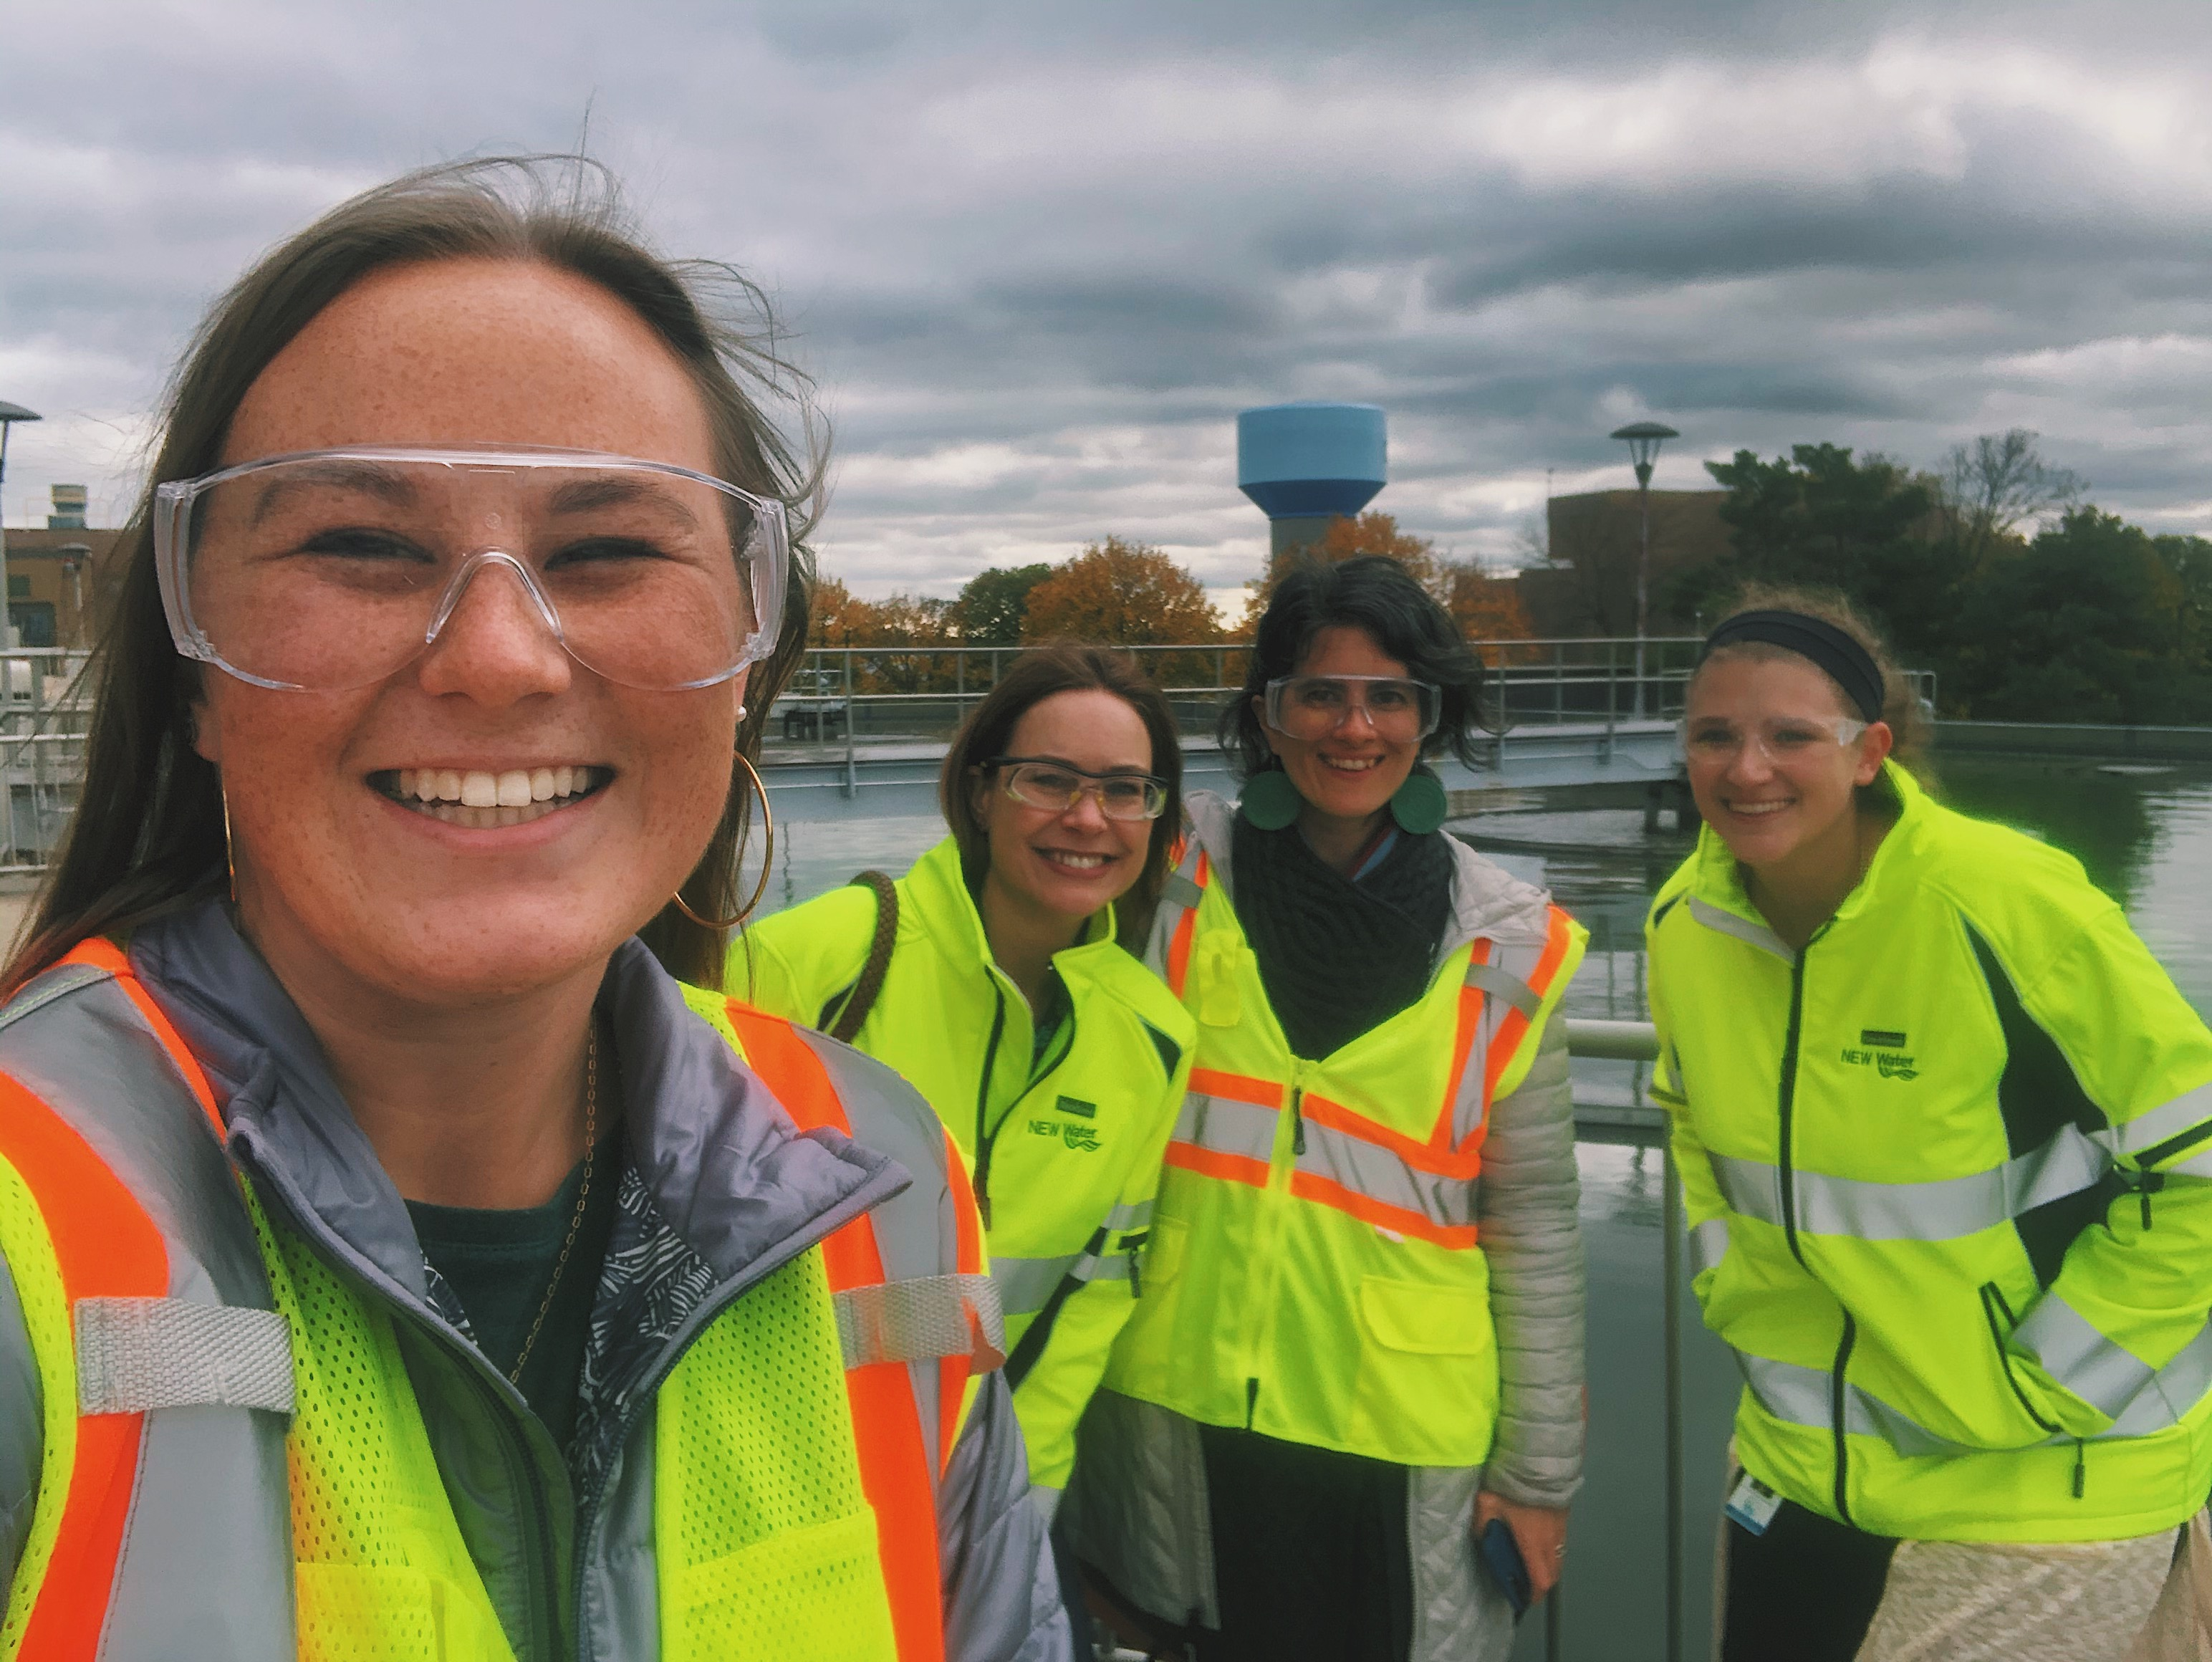 Wisconsin Idea Seminar director Catherine Reiland and intern Bethany Prochnow visited Tricia and her team at NEW Water in October of 2019. (Image courtesy of Bethany Prochnow/UW-Madison)